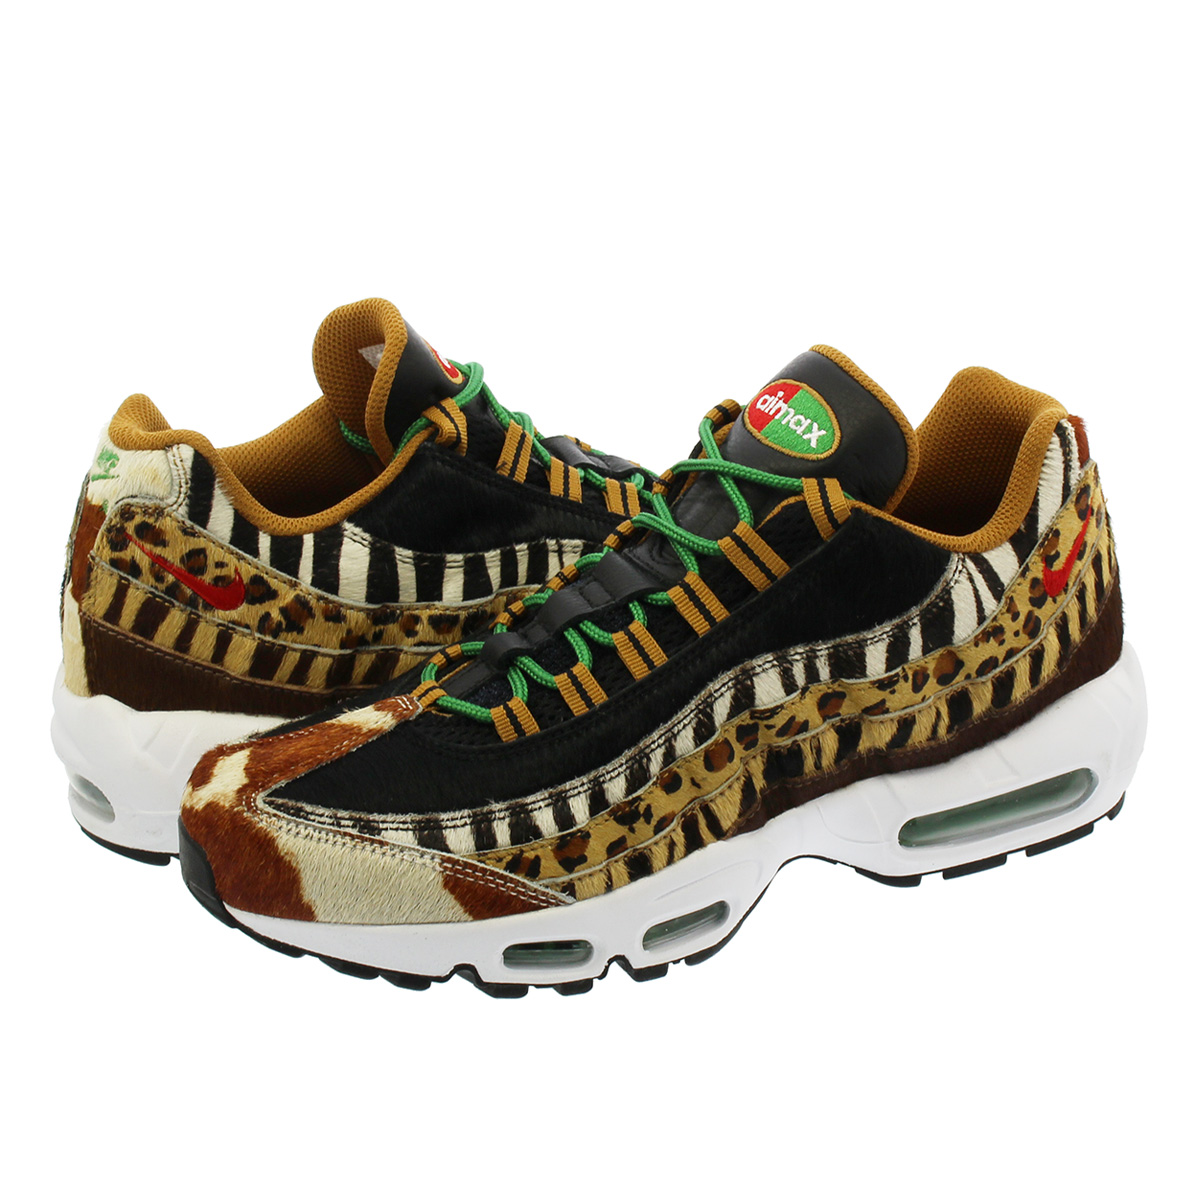 NIKE AIR MAX 95 DLX 【atmos】【ANIMAL PACK】 ナイキ エア マックス 95 DLX PONY/SPORT RED/BLACK aq0929-200